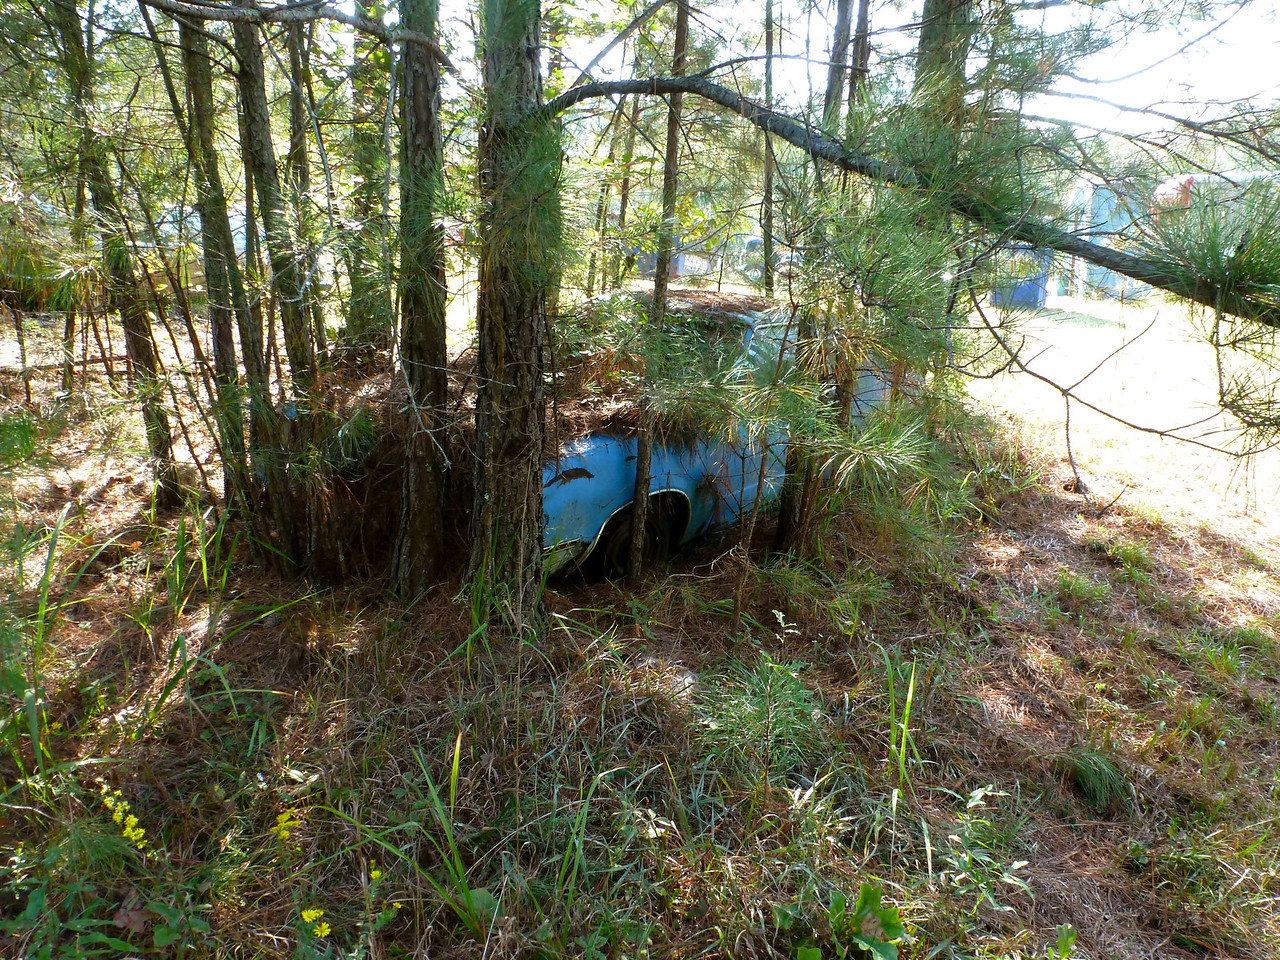 Can get a good deal on a Mustang, but will need a chain saw to get it out.